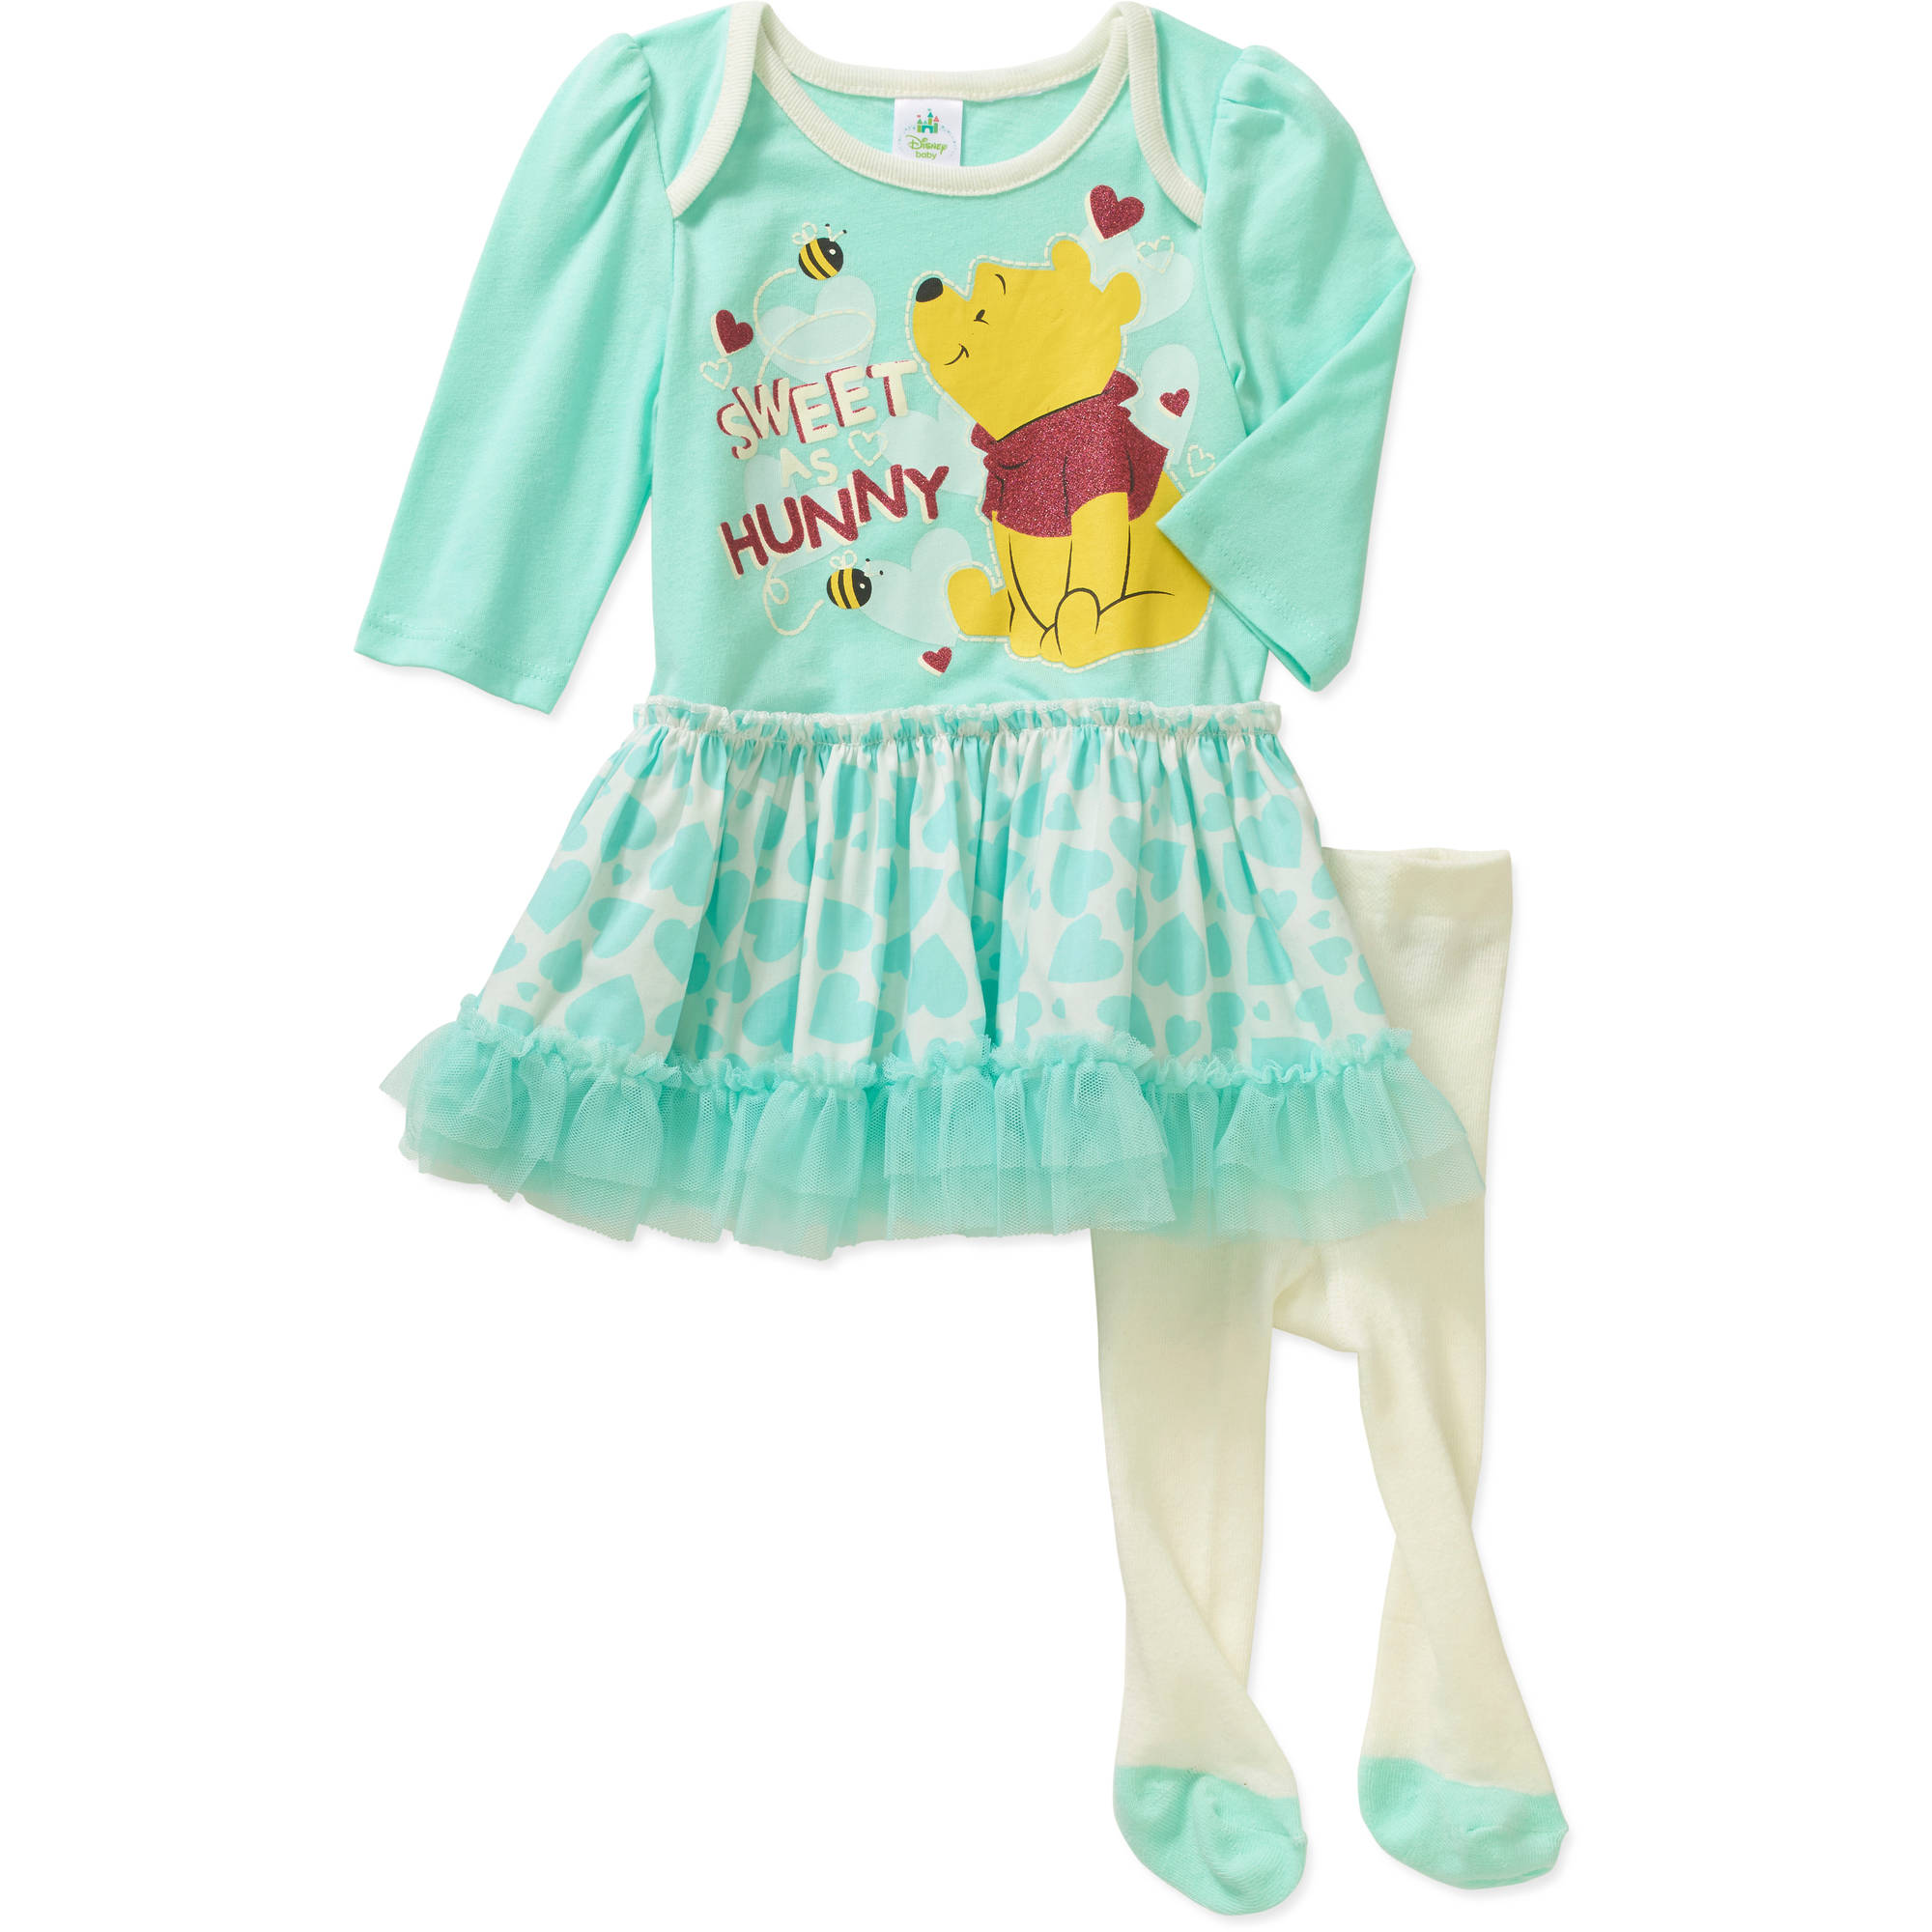 Winnie the Pooh Newborn Baby Girl Skirted Tunic & Leggings Outfit Set